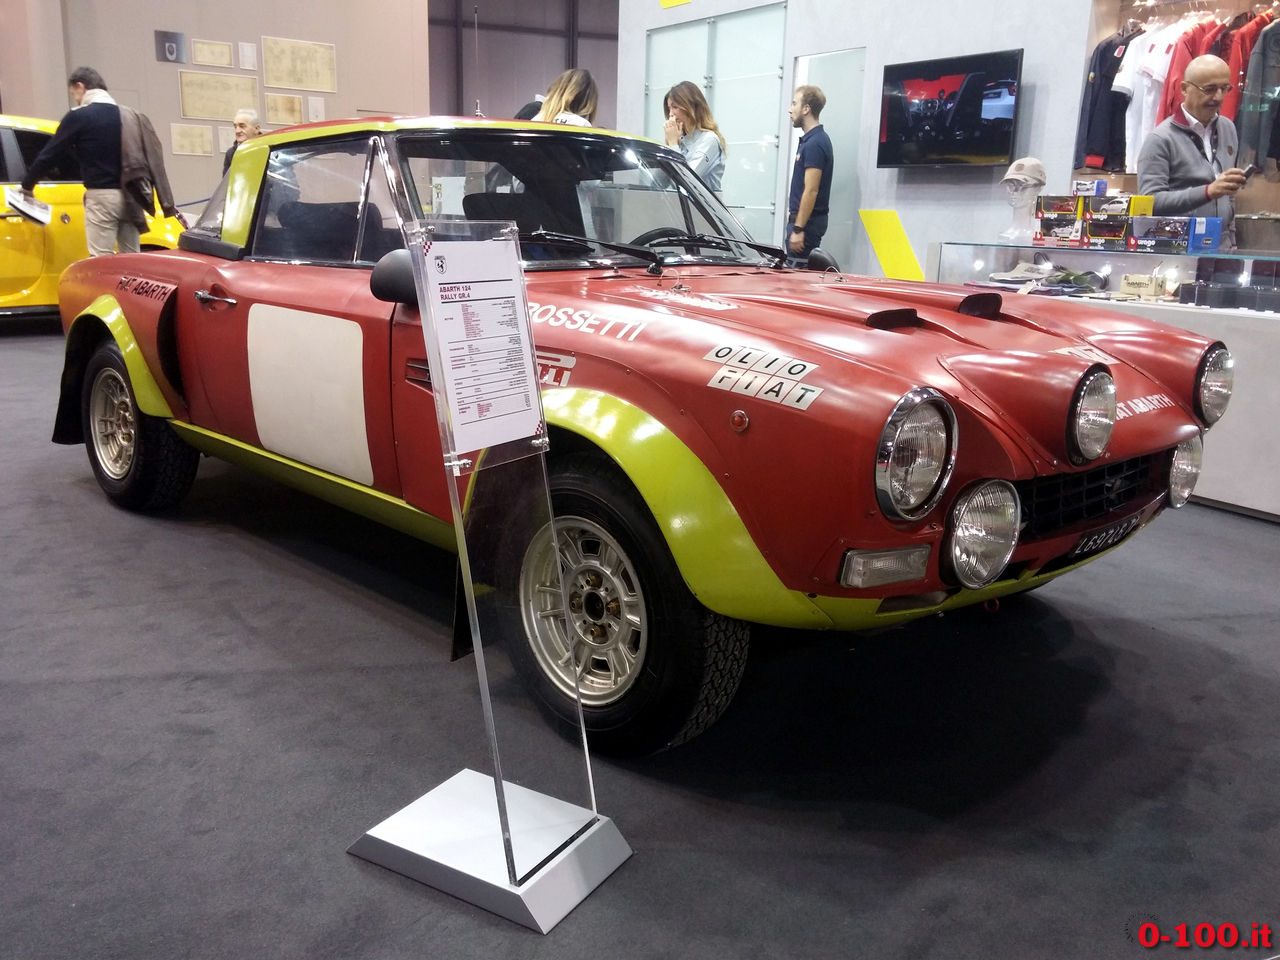 duemila-ruote-milano-autoclassica-rm-sothebys-0-100-fiat-abarth-124-rally_25